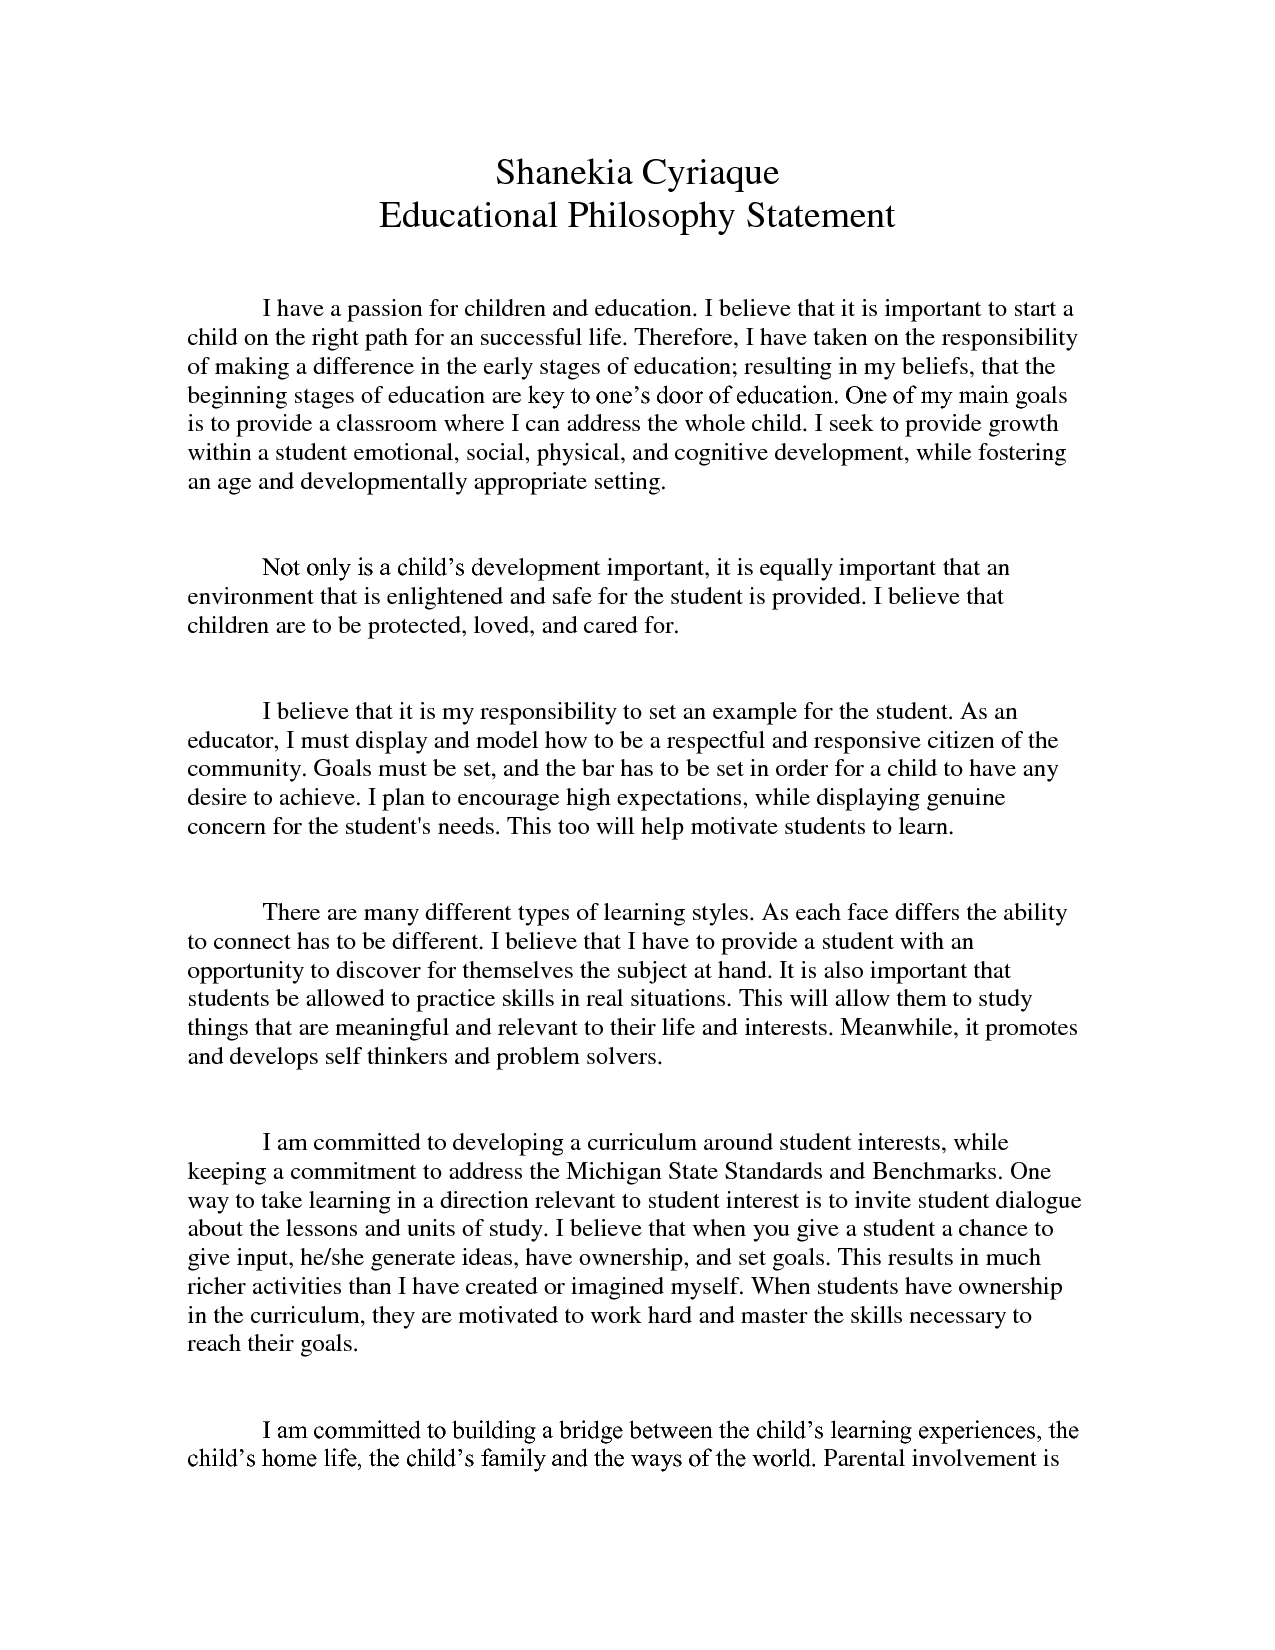 educational philosophy statement samples cda 8663 educational philosophy statement samples